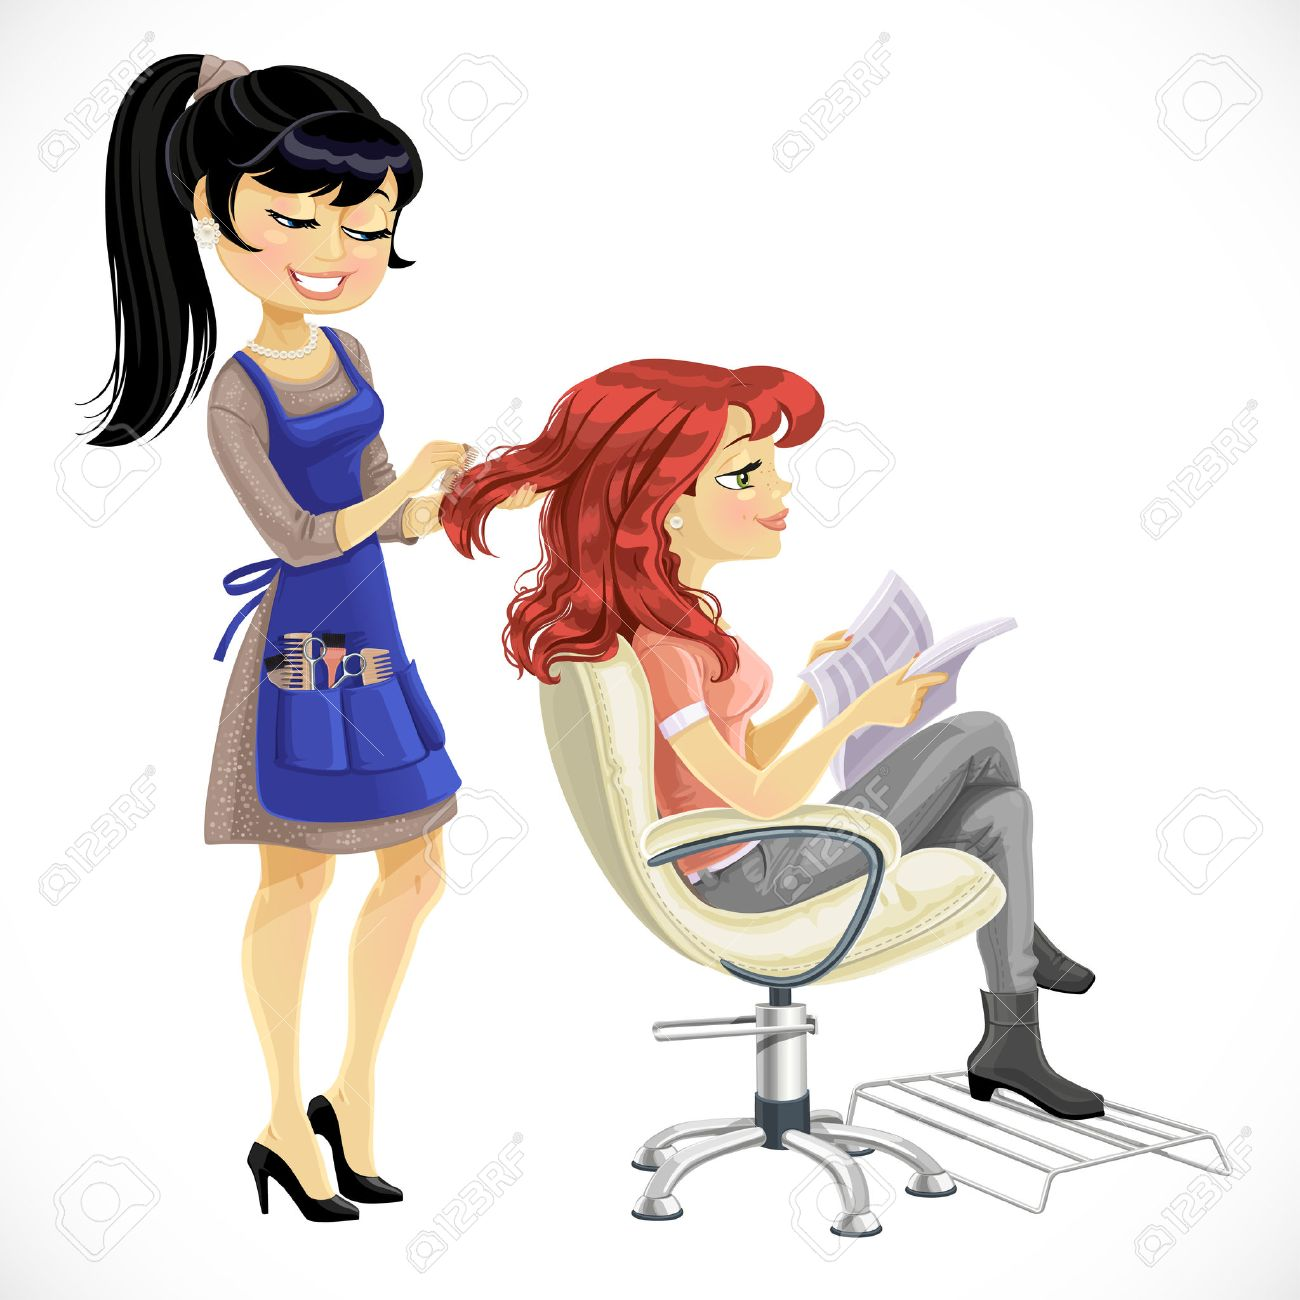 Hair salon chair isolated stock photos illustrations and vector art - Hair Salon Equipment Barber Combing Cute Client Girl